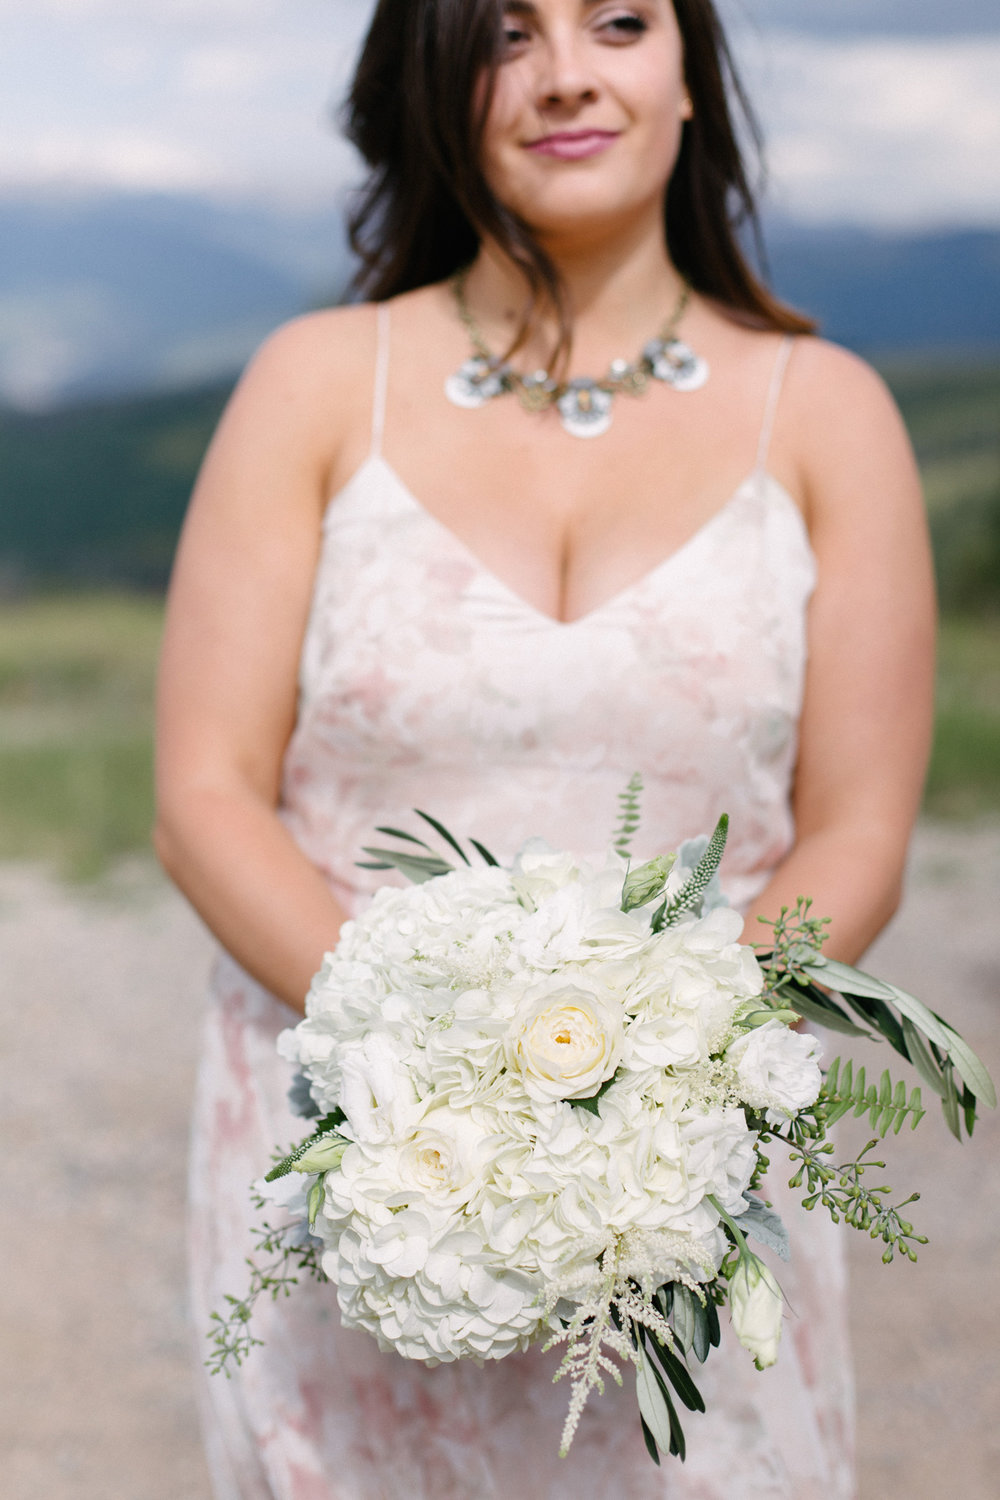 338-beaver-creek--bouquet--bridesmaid--white-flowers.jpg